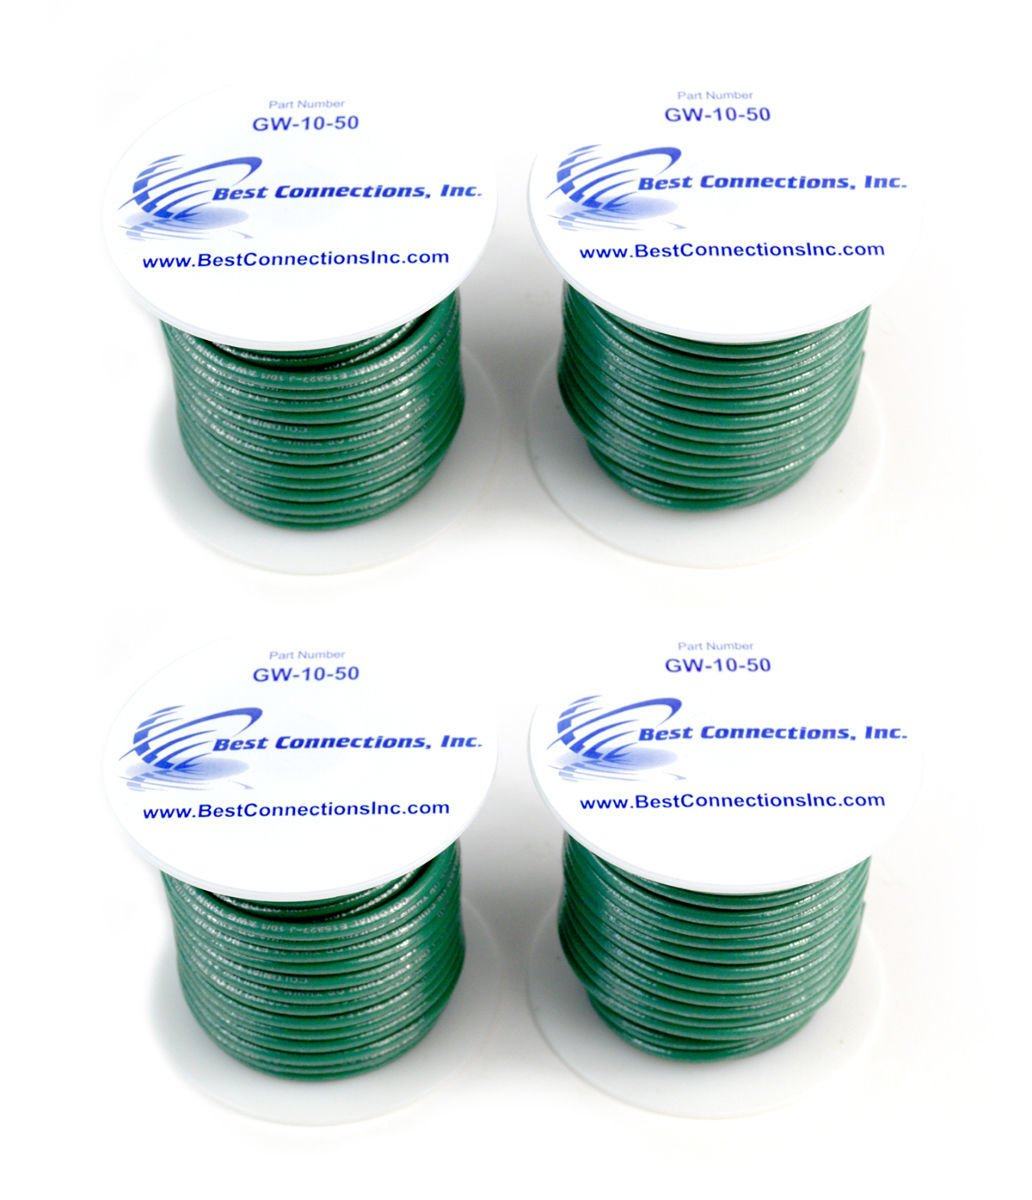 4 rolls of 10 Gauge 50' Feet Green Ground Wire Solid Copper UL Listed